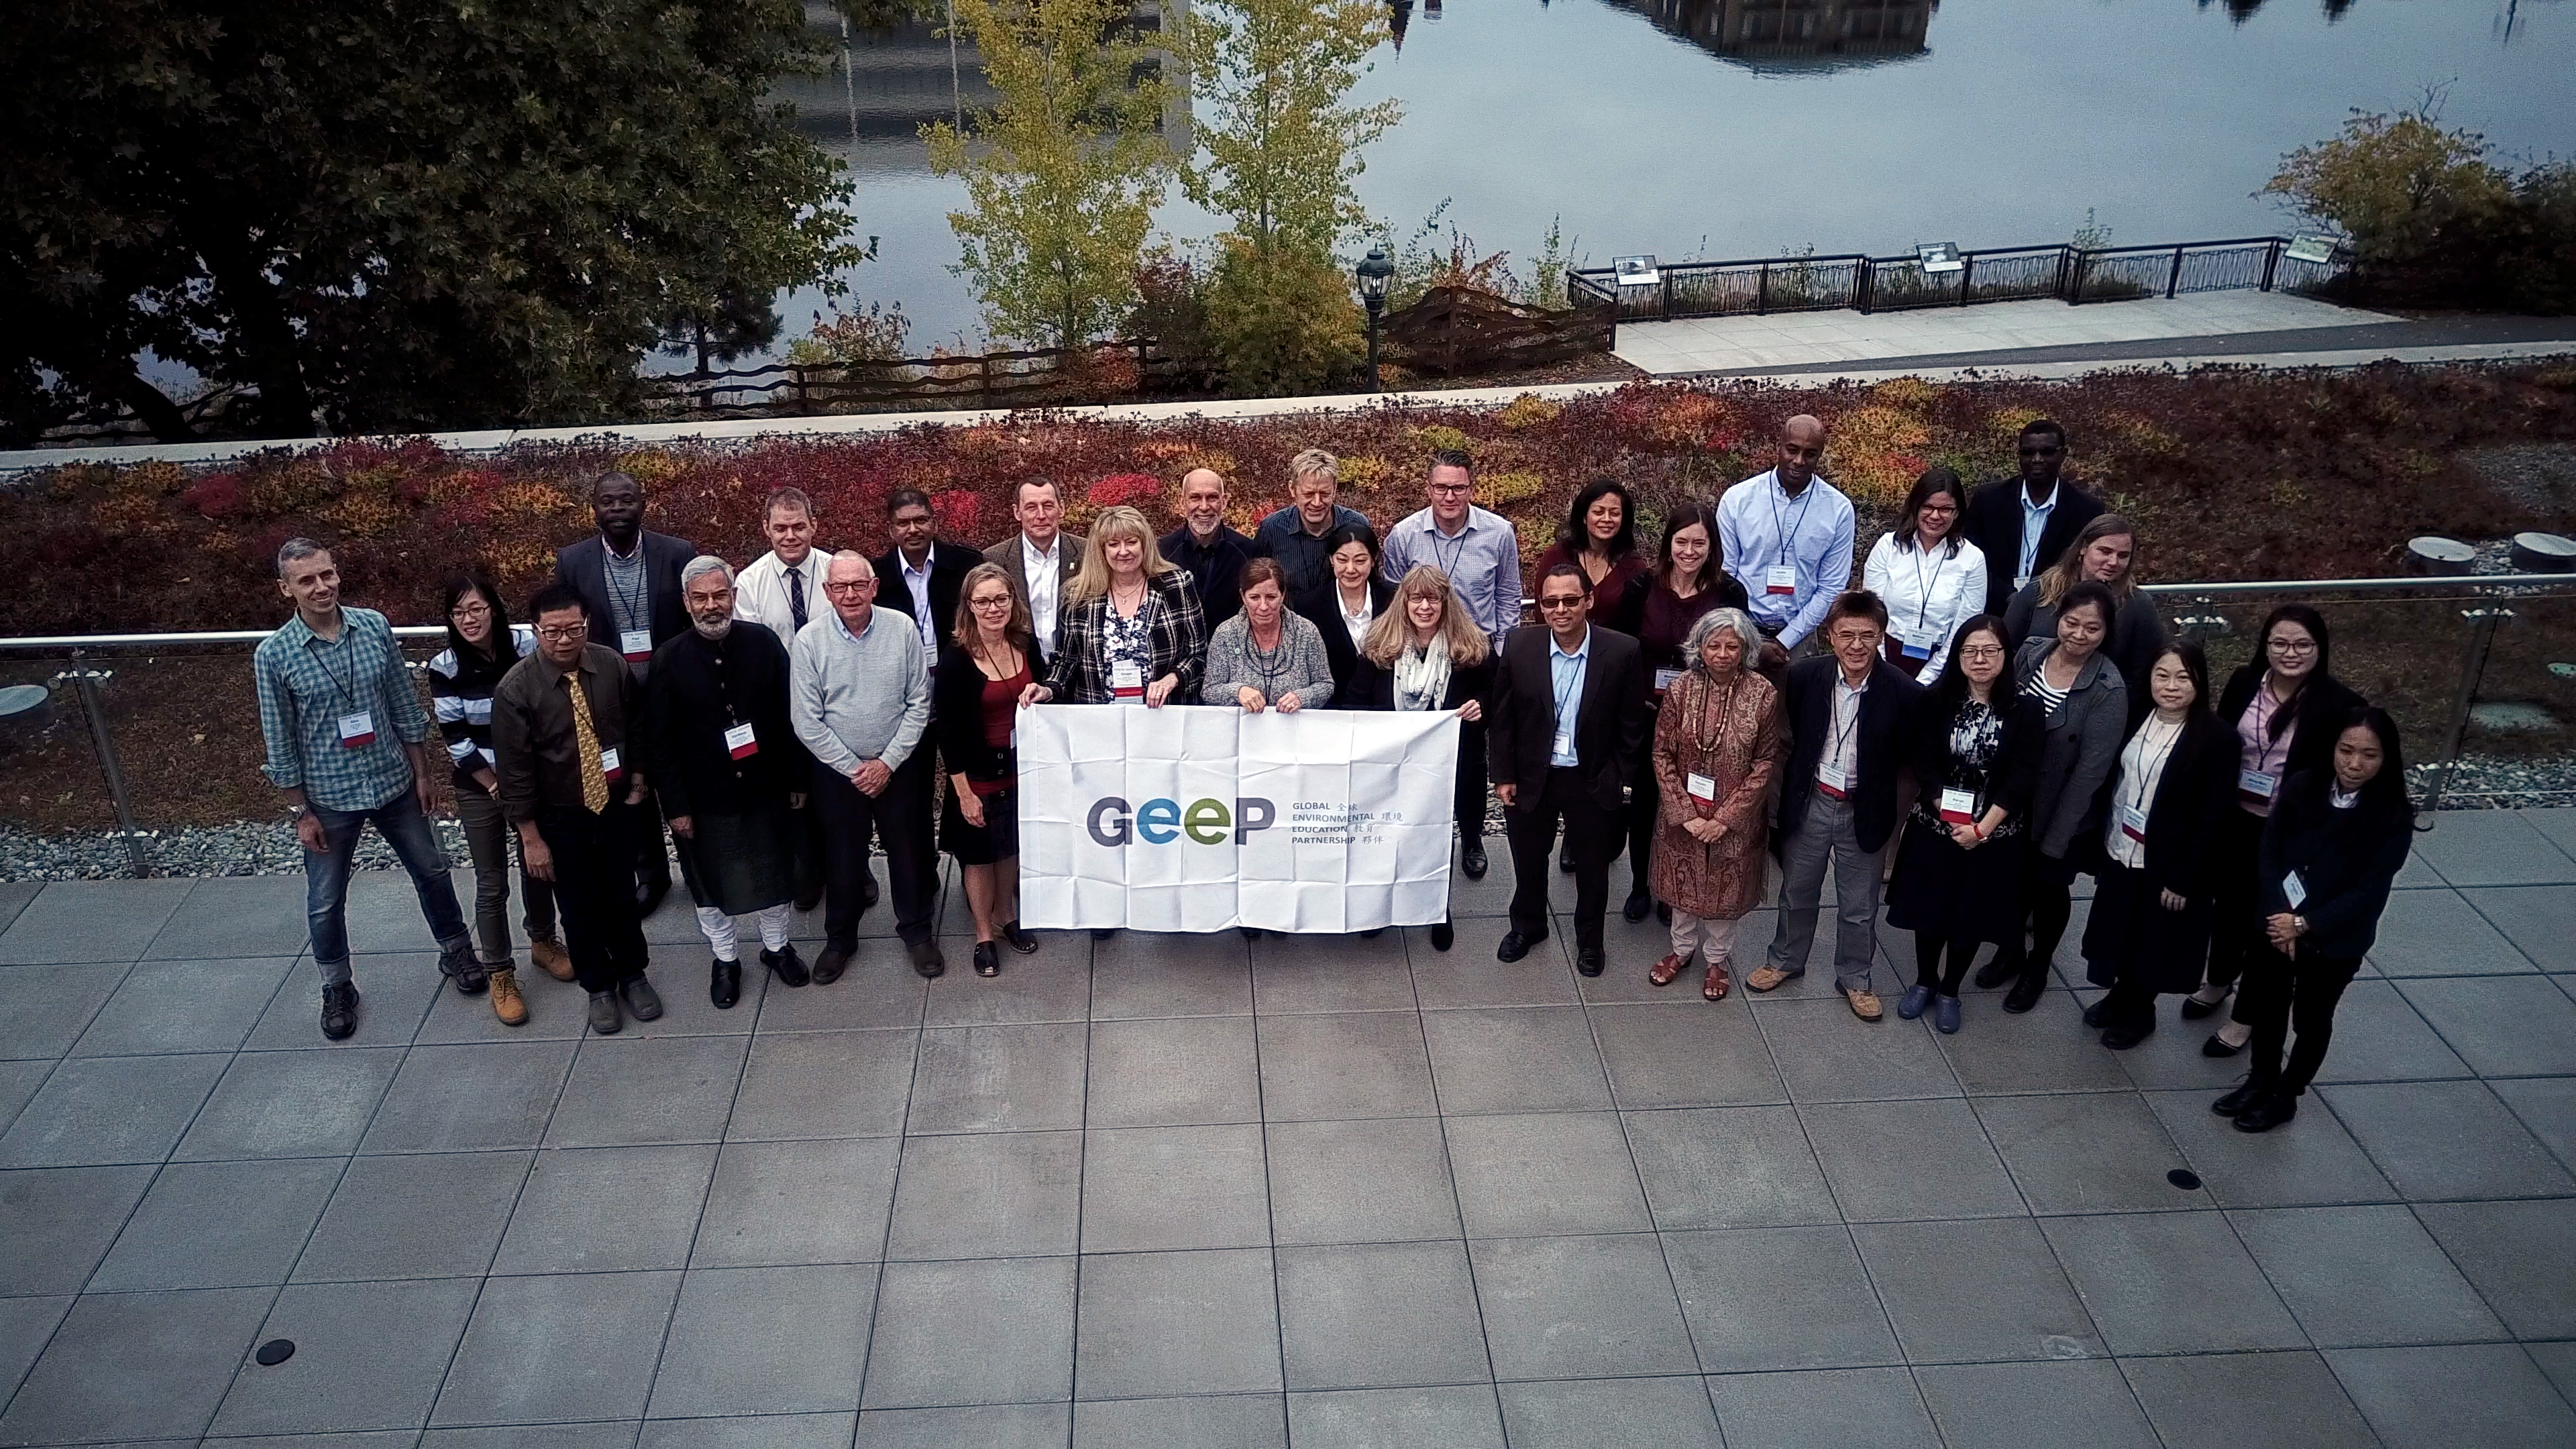 GEEP Advisors and delegates gather in Spokane, Washington, US (October 2018)